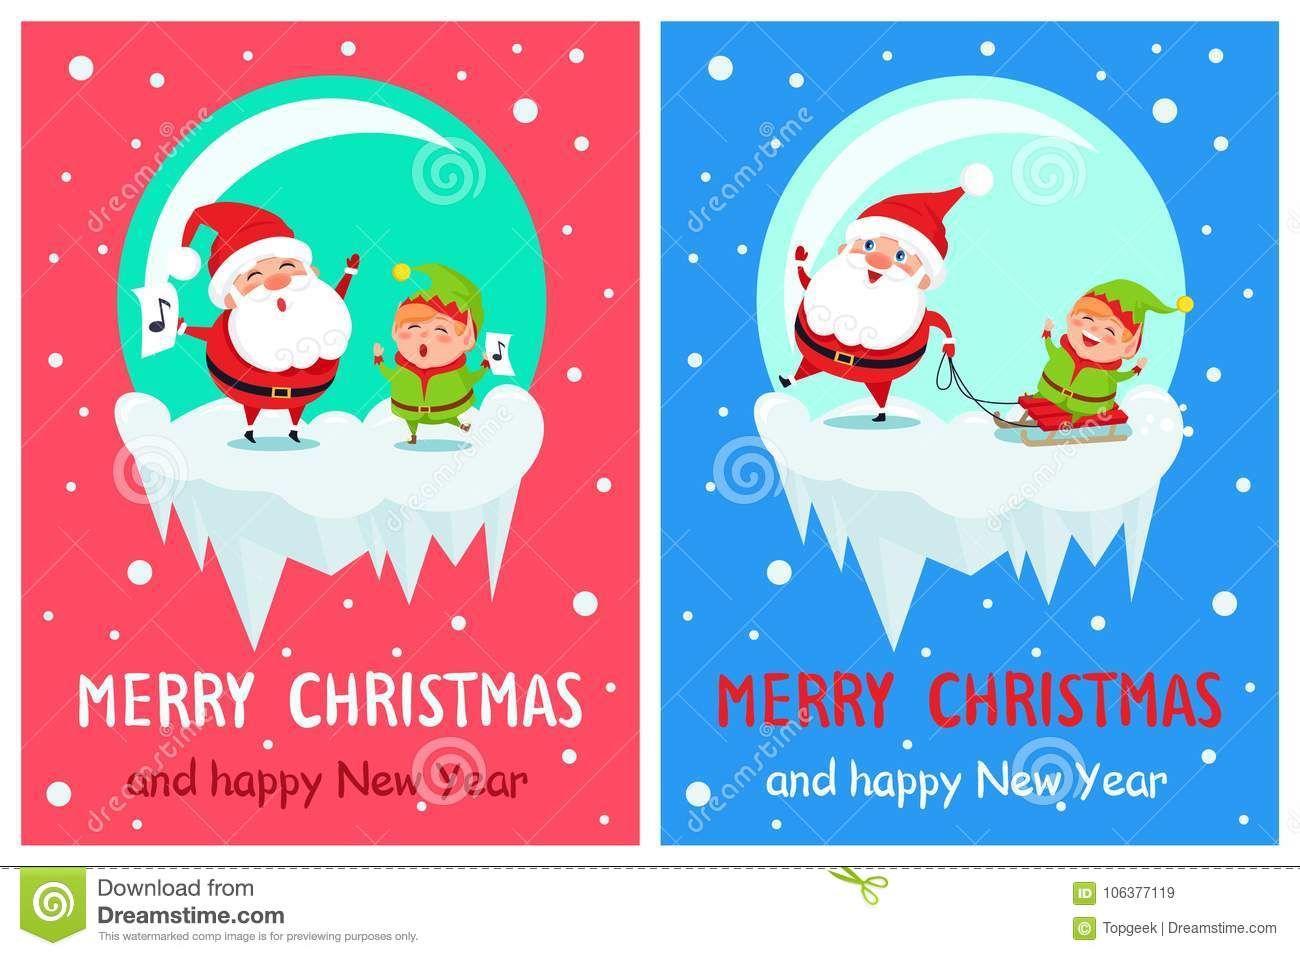 merry christmas and happy new year greetings from singing santa and his fellow helper elf winter characters riding on sled vector illustration